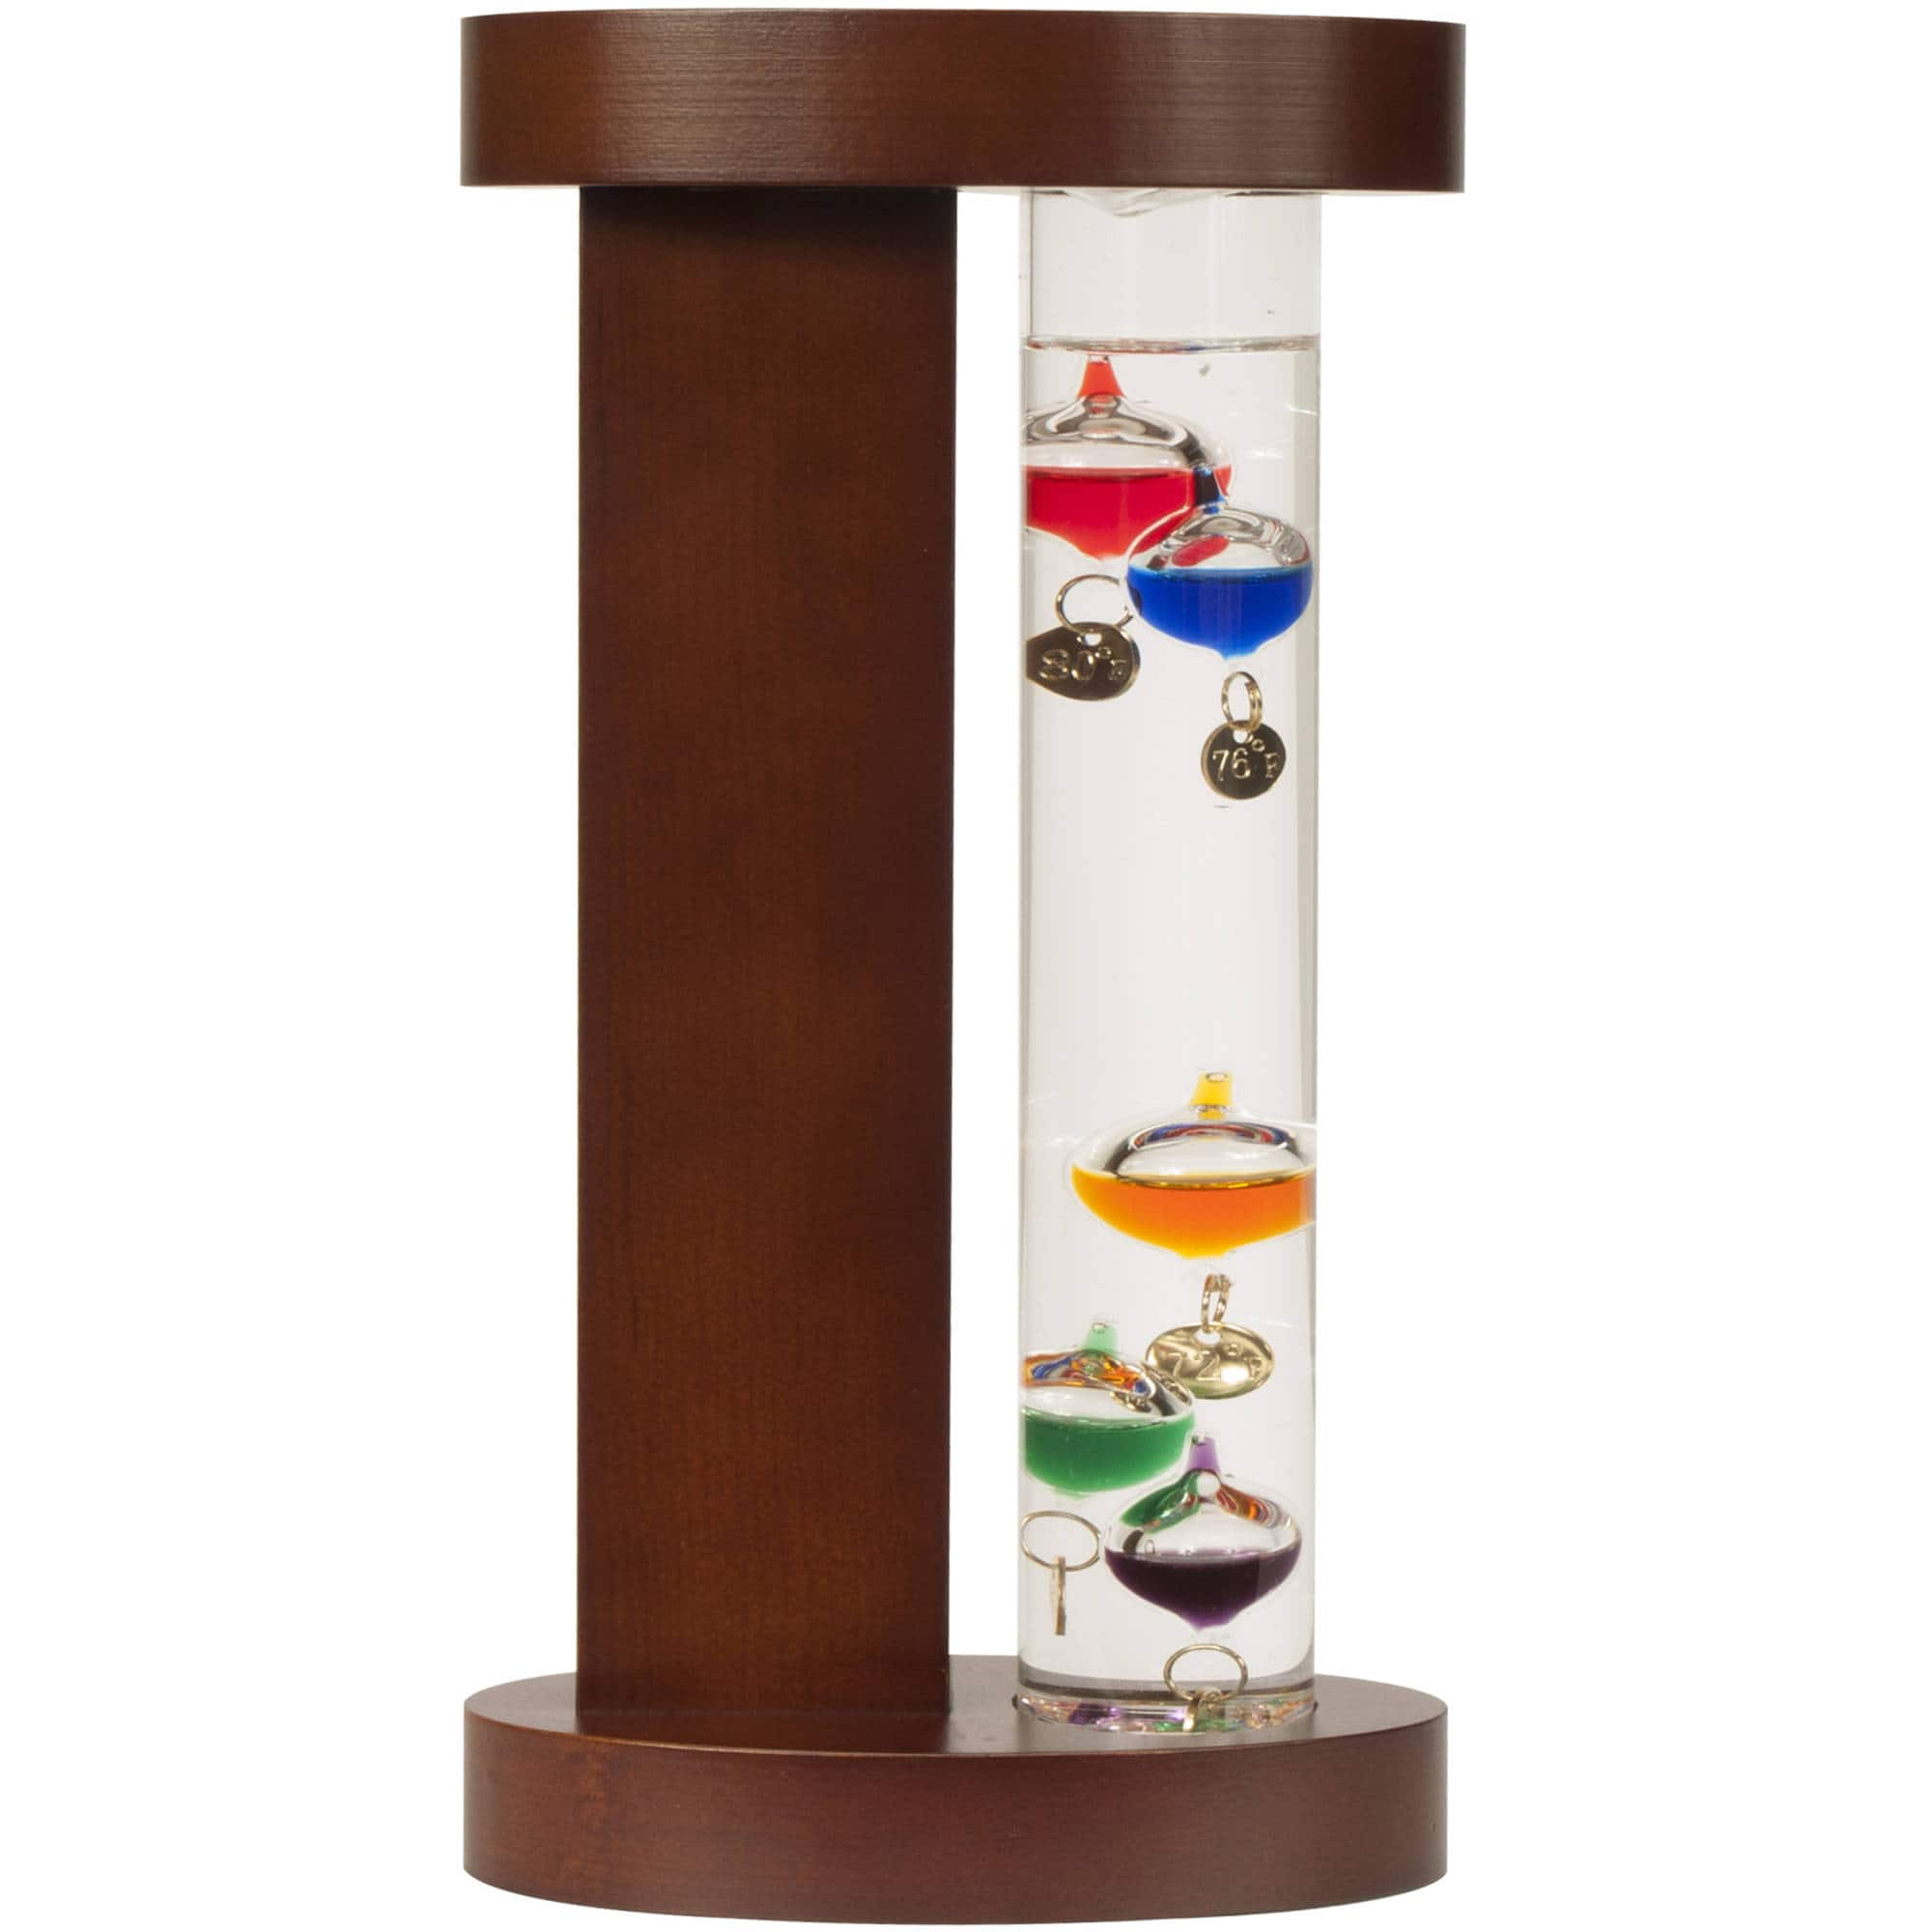 Galileo Thermometer with Wood Stand for $4.88 @Walmart